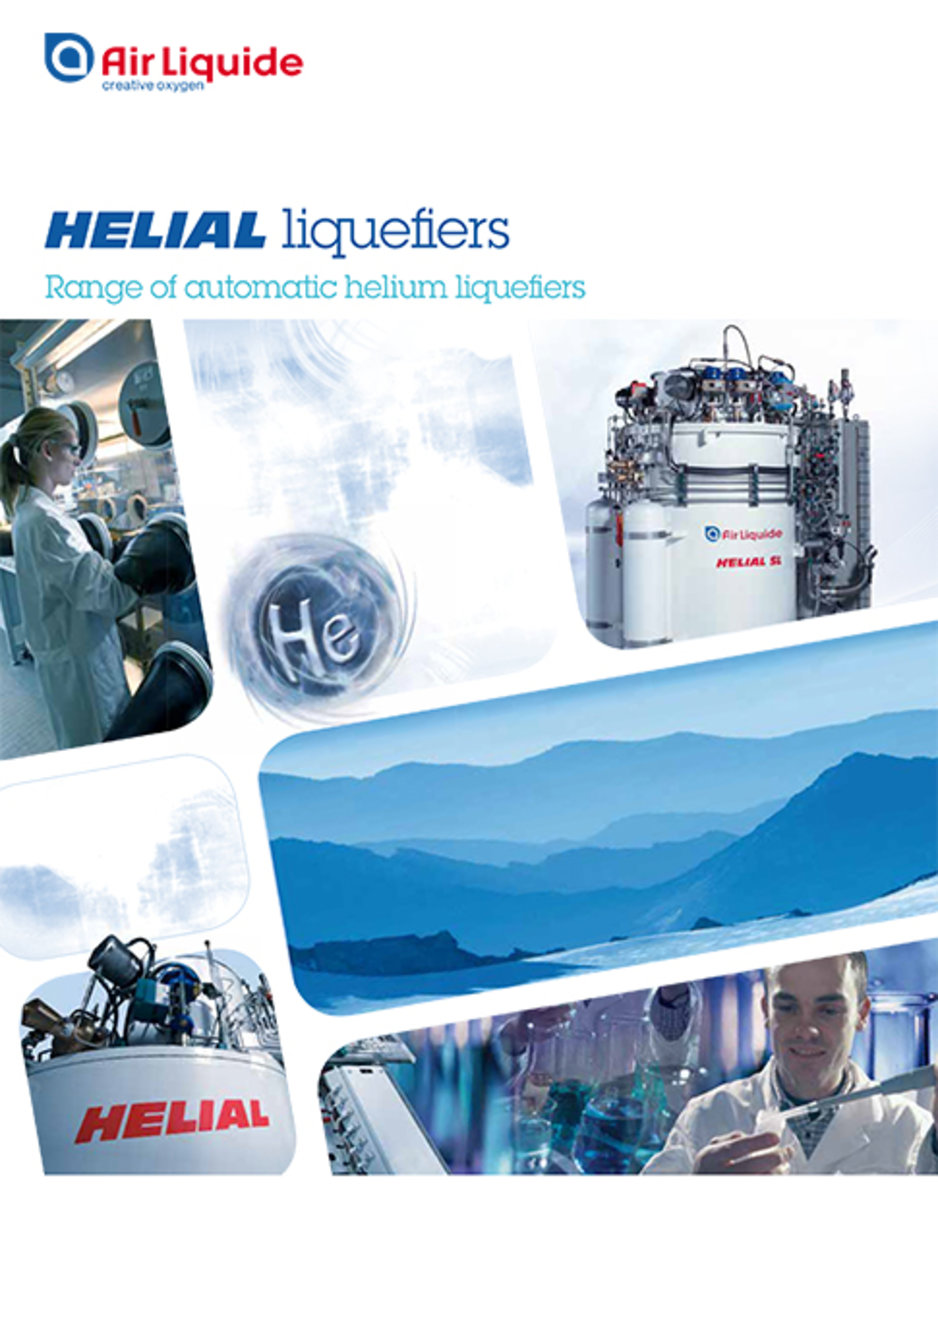 helial liquefiers brochure cover